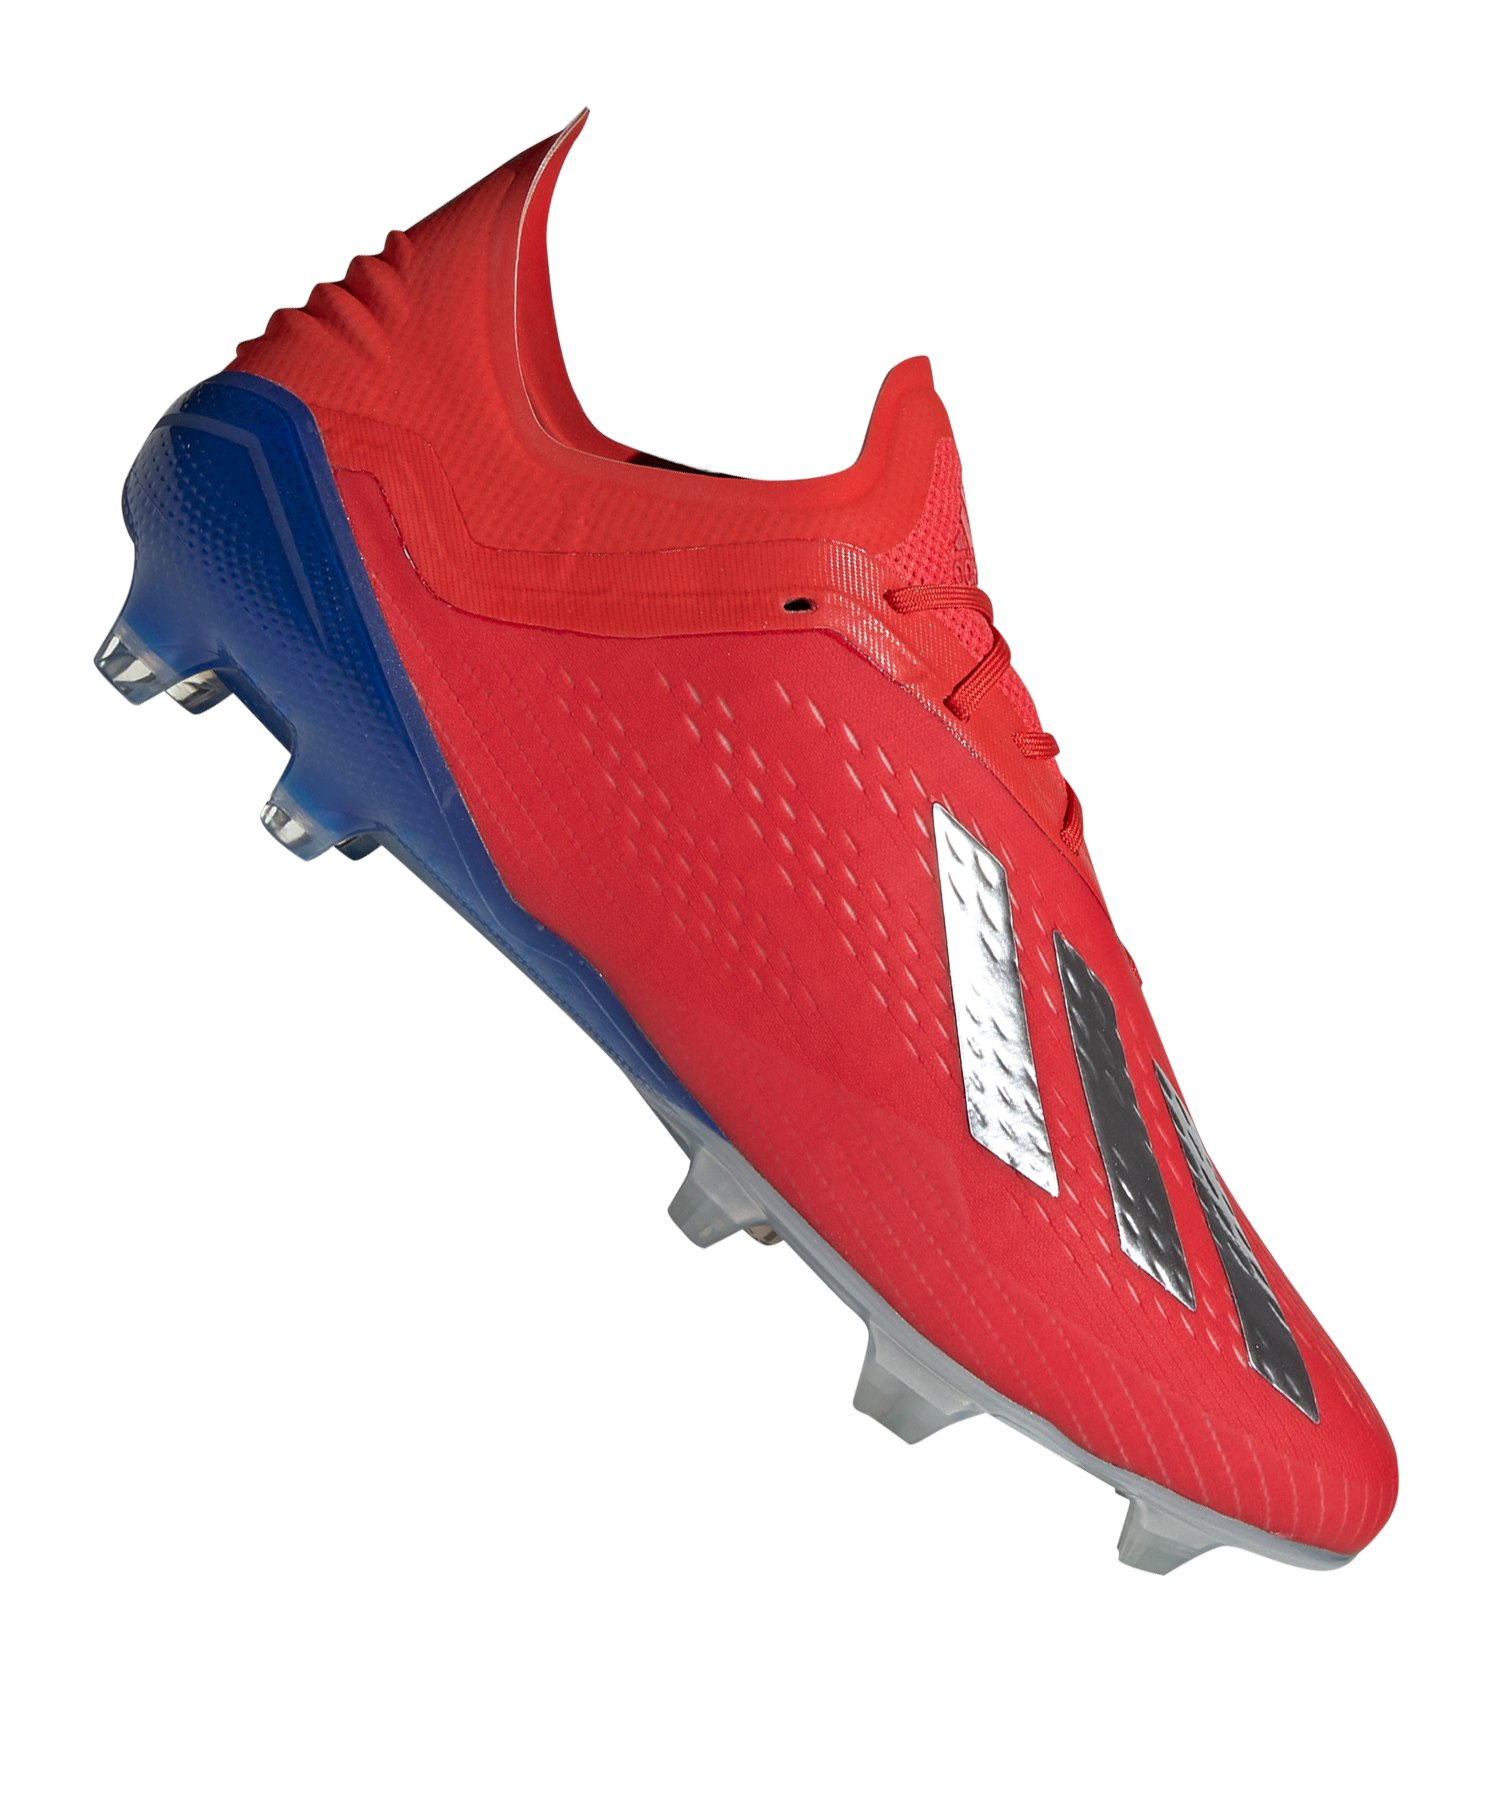 the latest 099c6 aaa72 adidas X 18.1 FG Rot Blau - rot